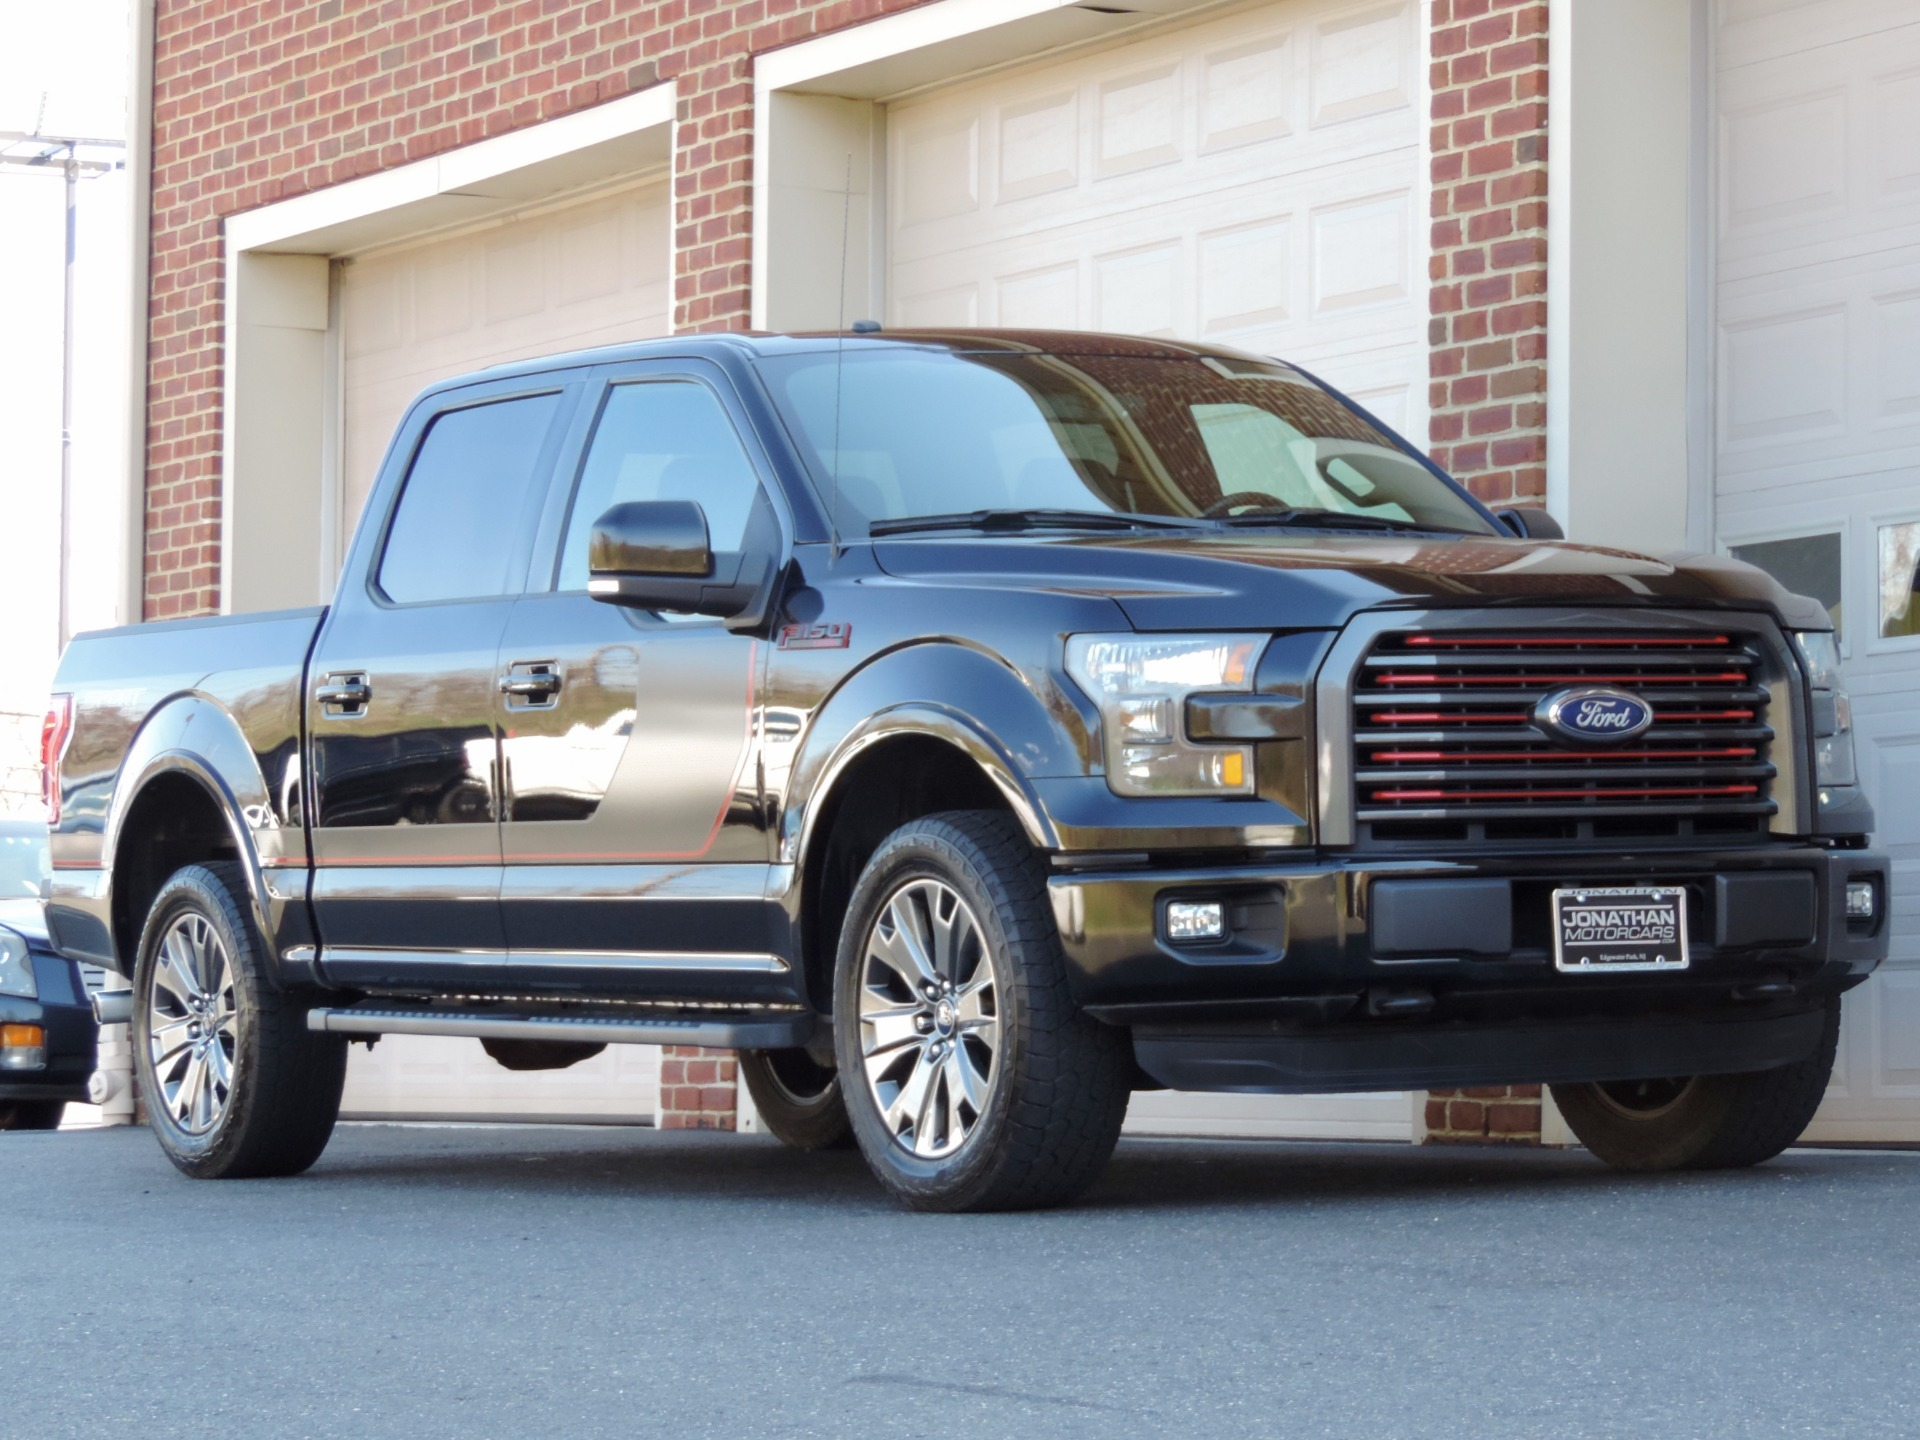 Ford Dealers Nj >> 2016 Ford F-150 Lariat Special Edition Sport Stock # B79954 for sale near Edgewater Park, NJ ...